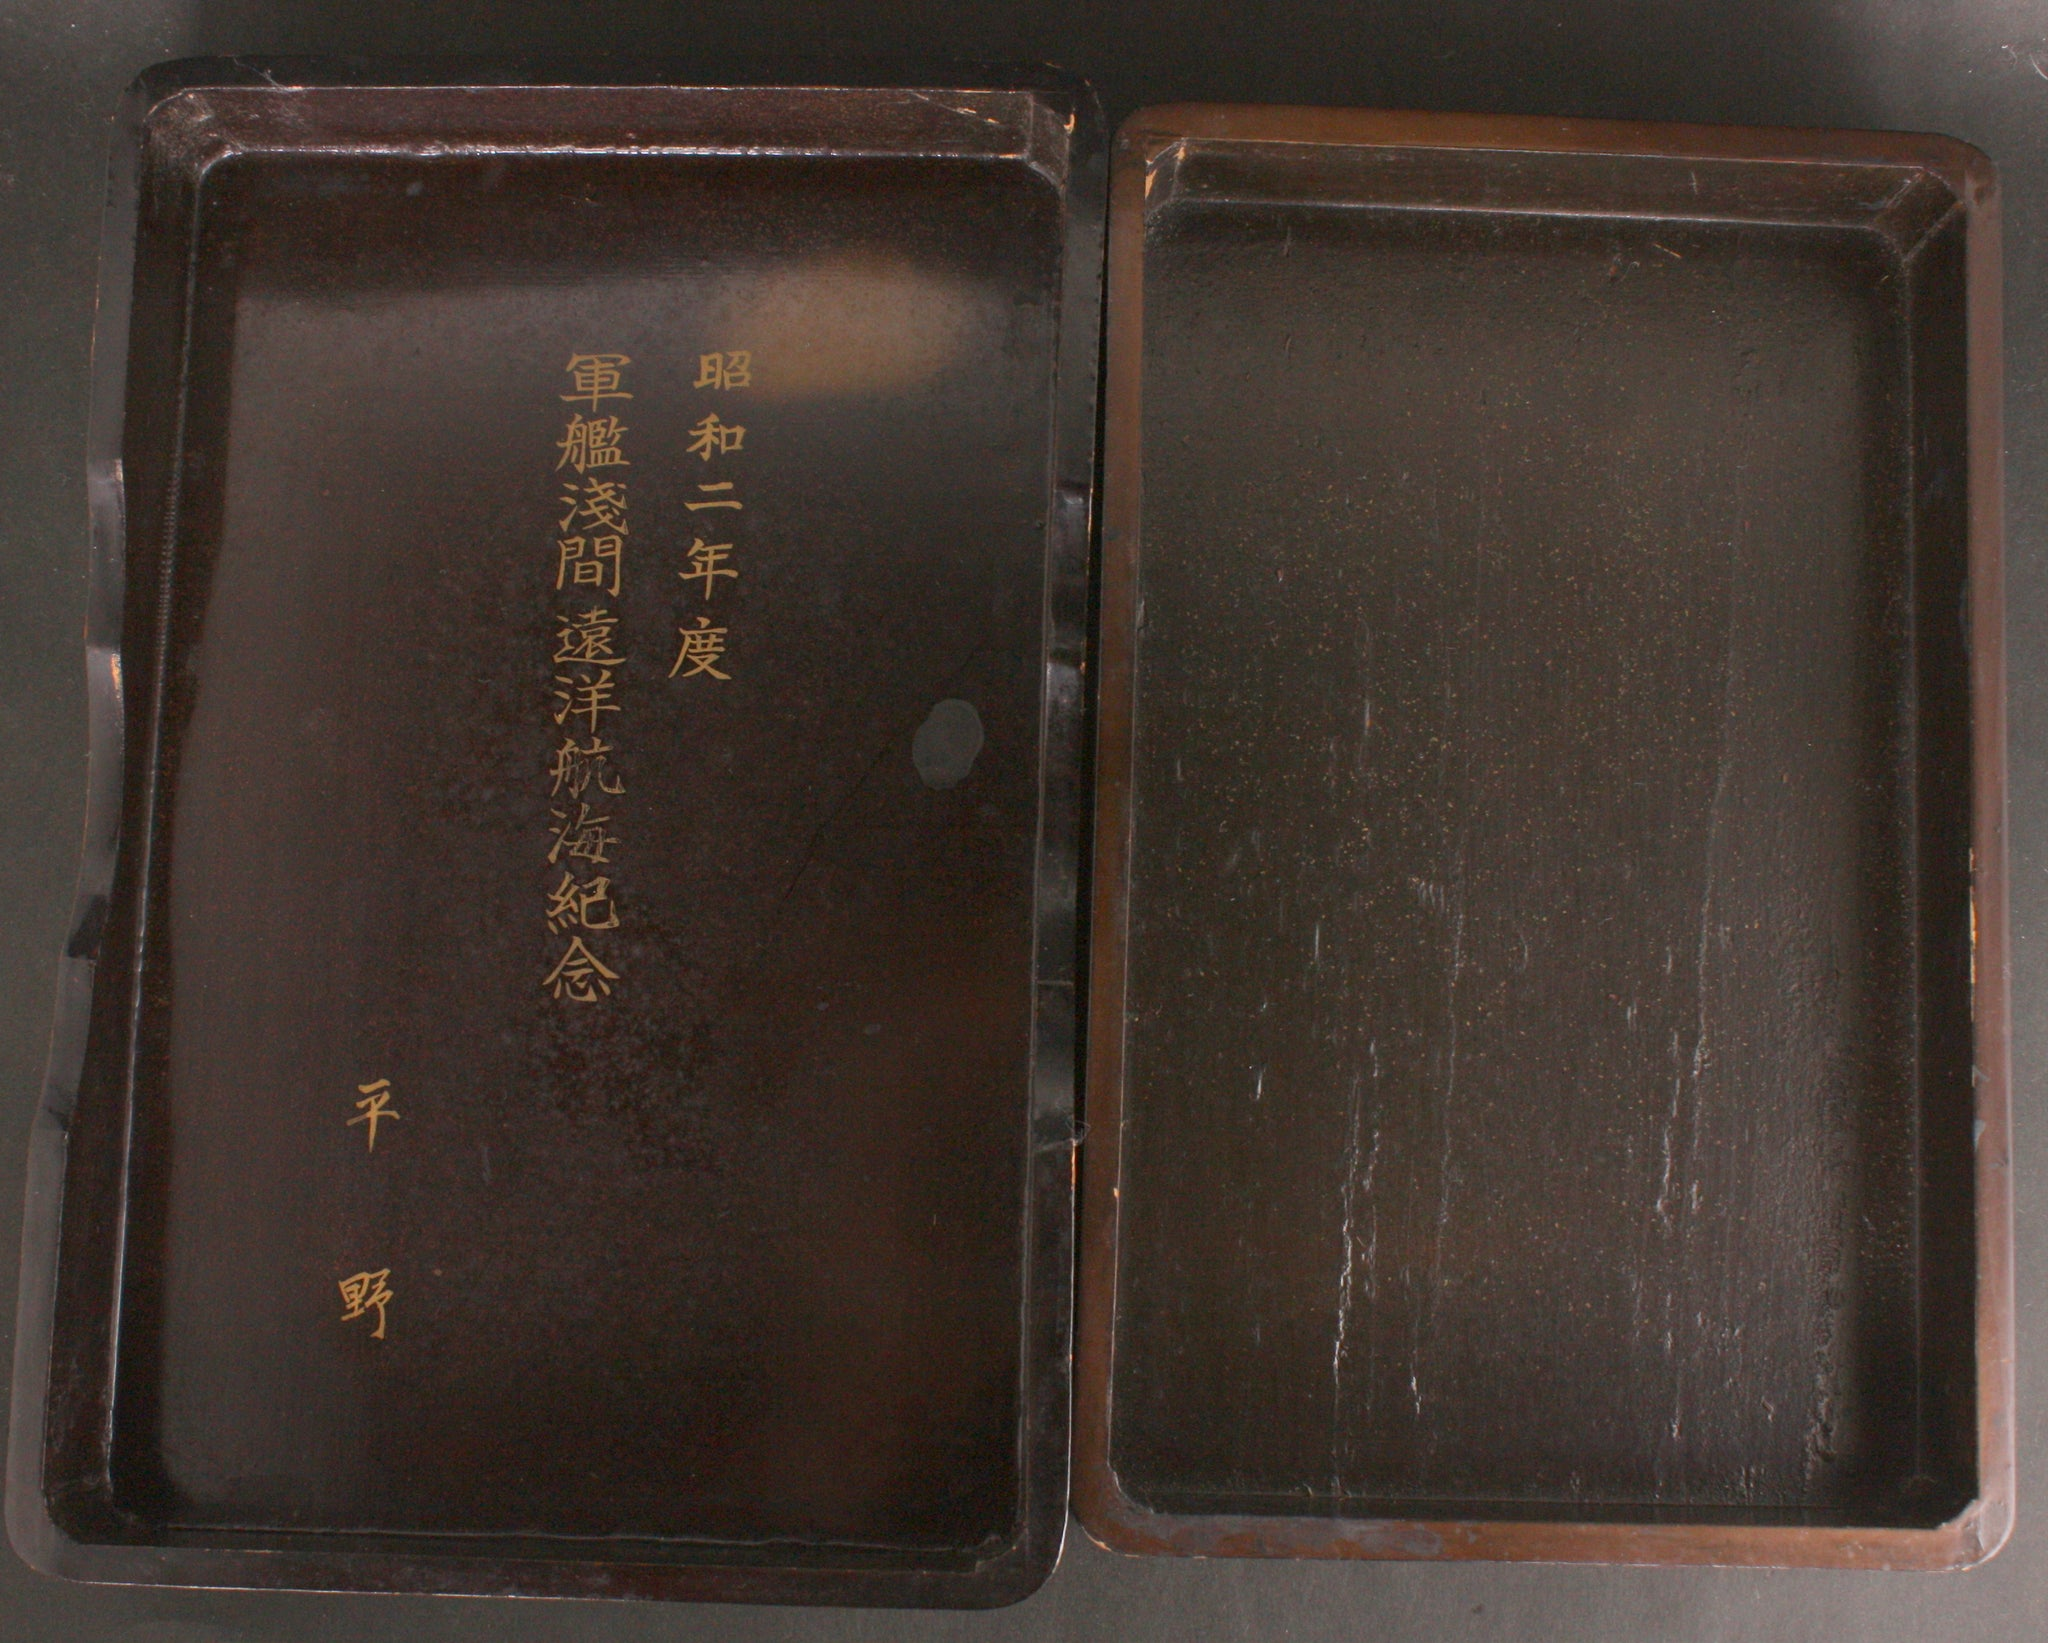 Very Rare Antique Japanese Military 1927 Cruiser Asama North America Tour Commemoration Lacquer Box